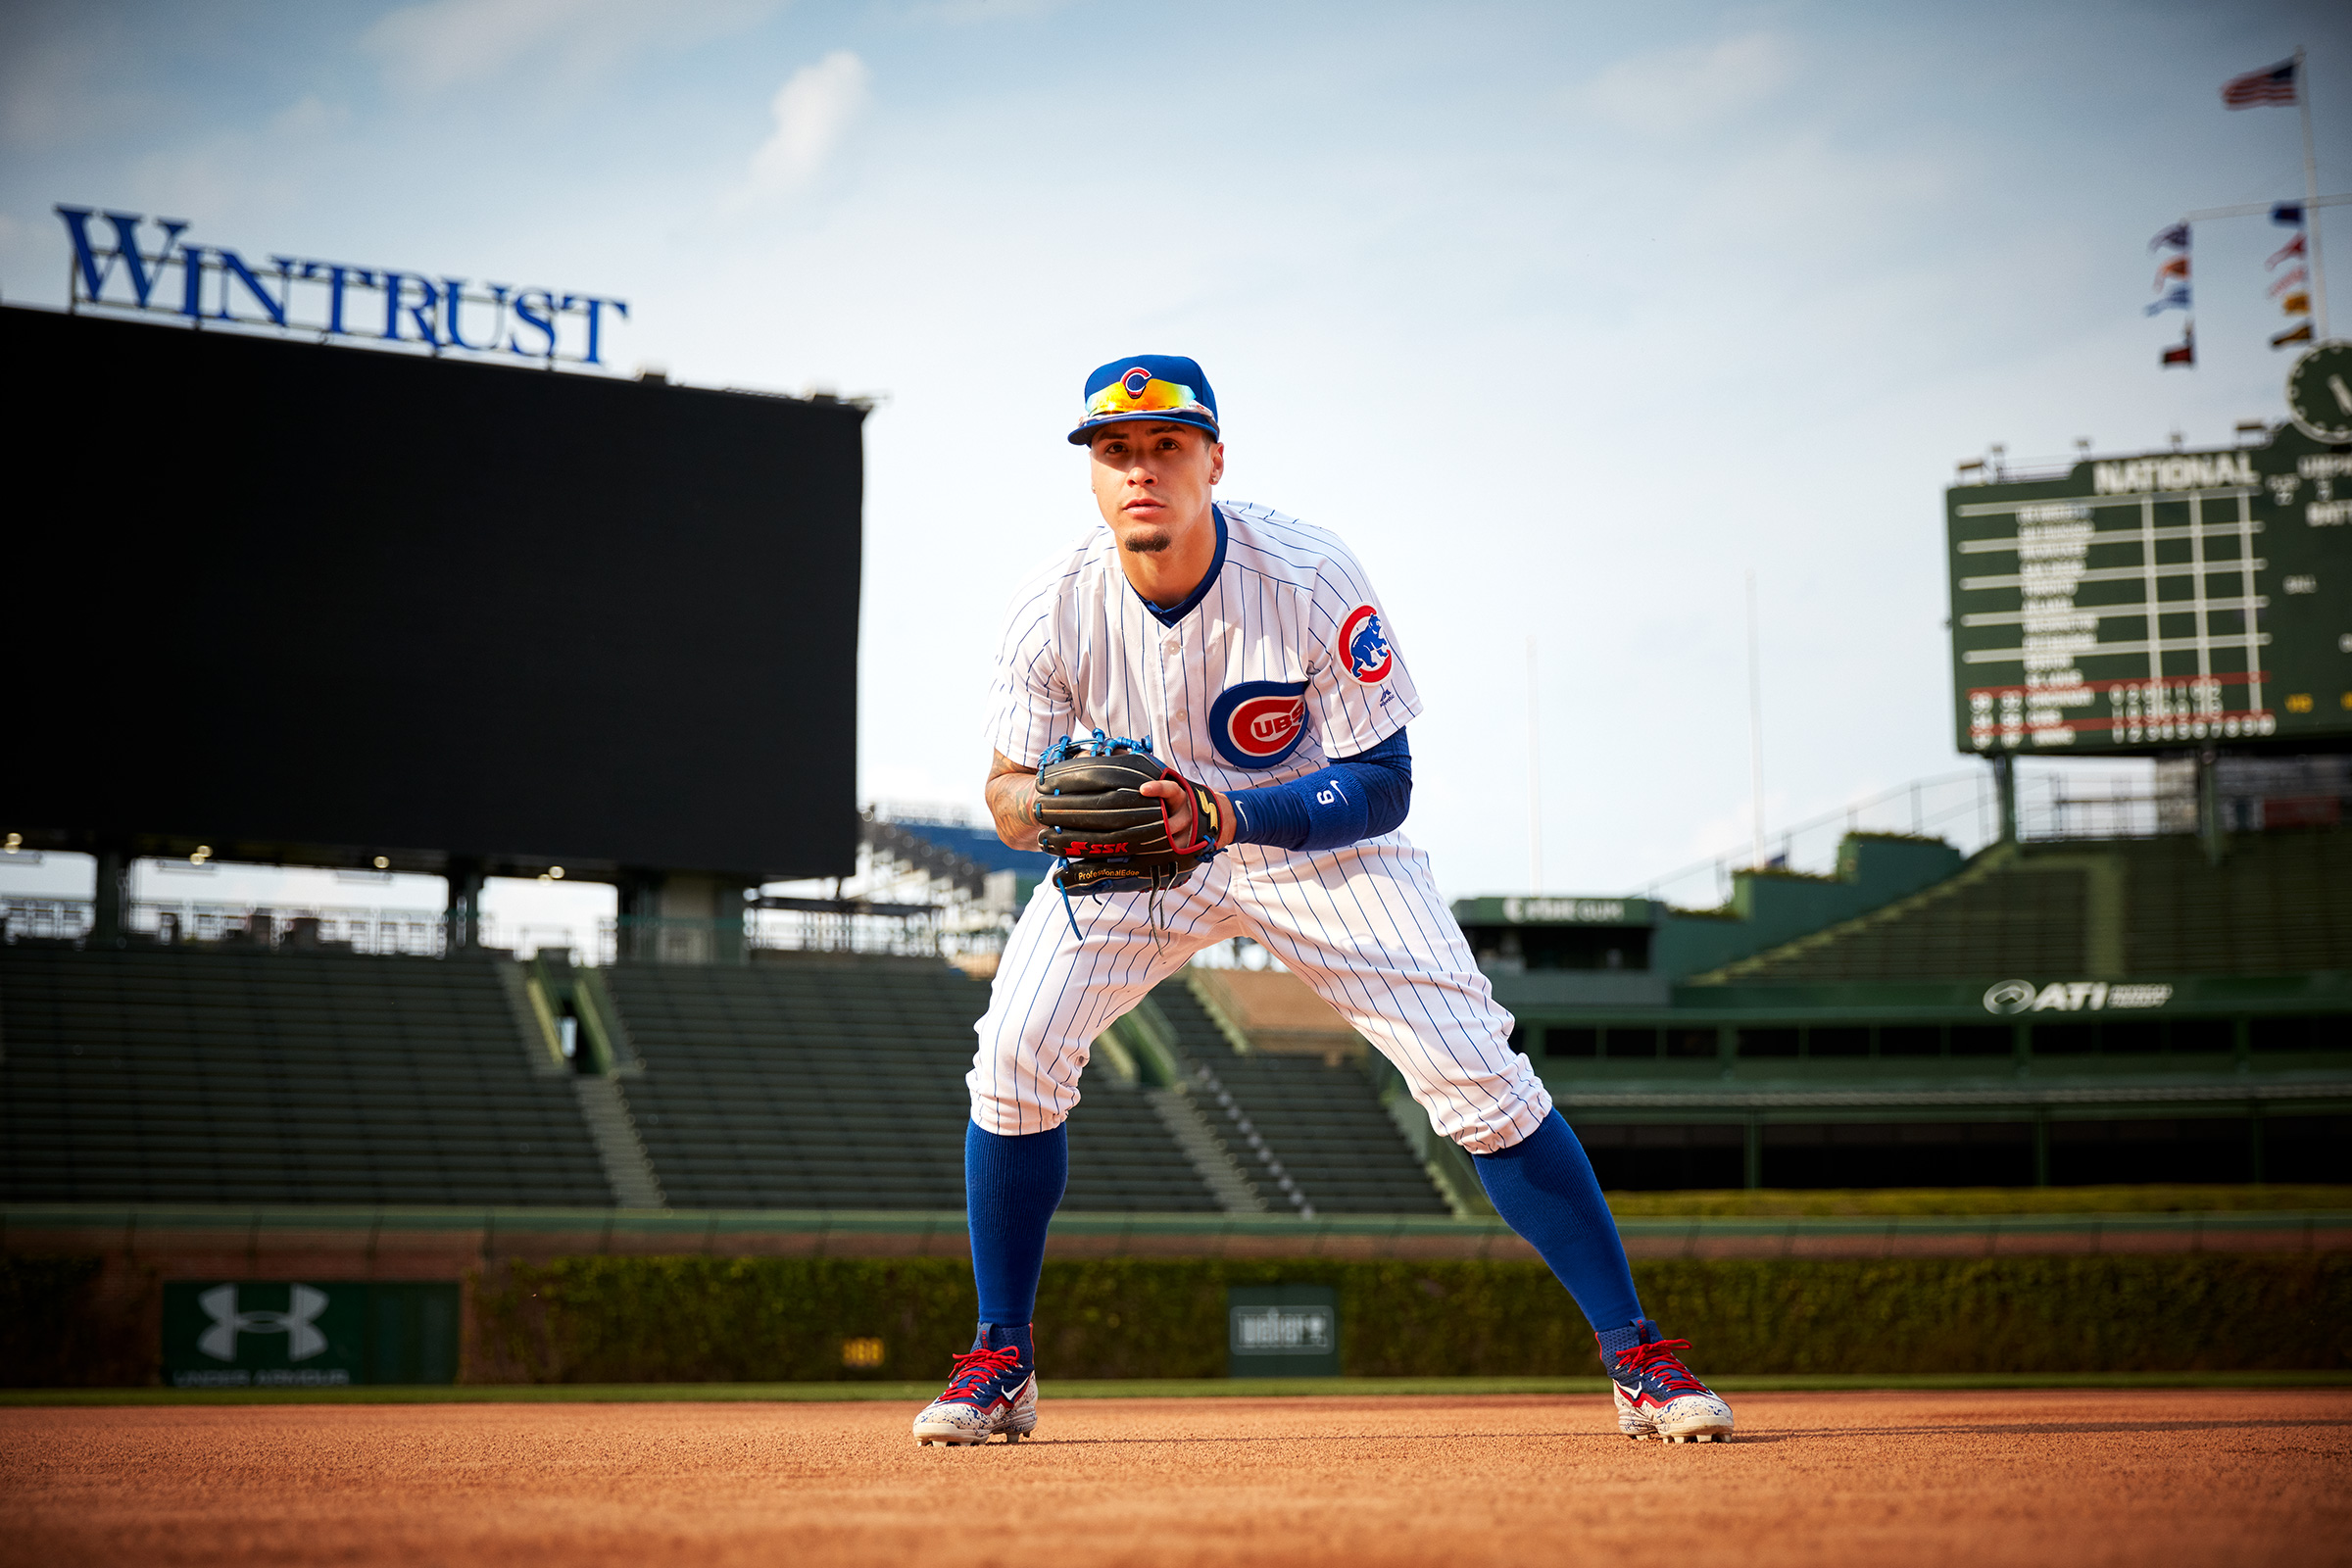 Javy Baez for David Seeds